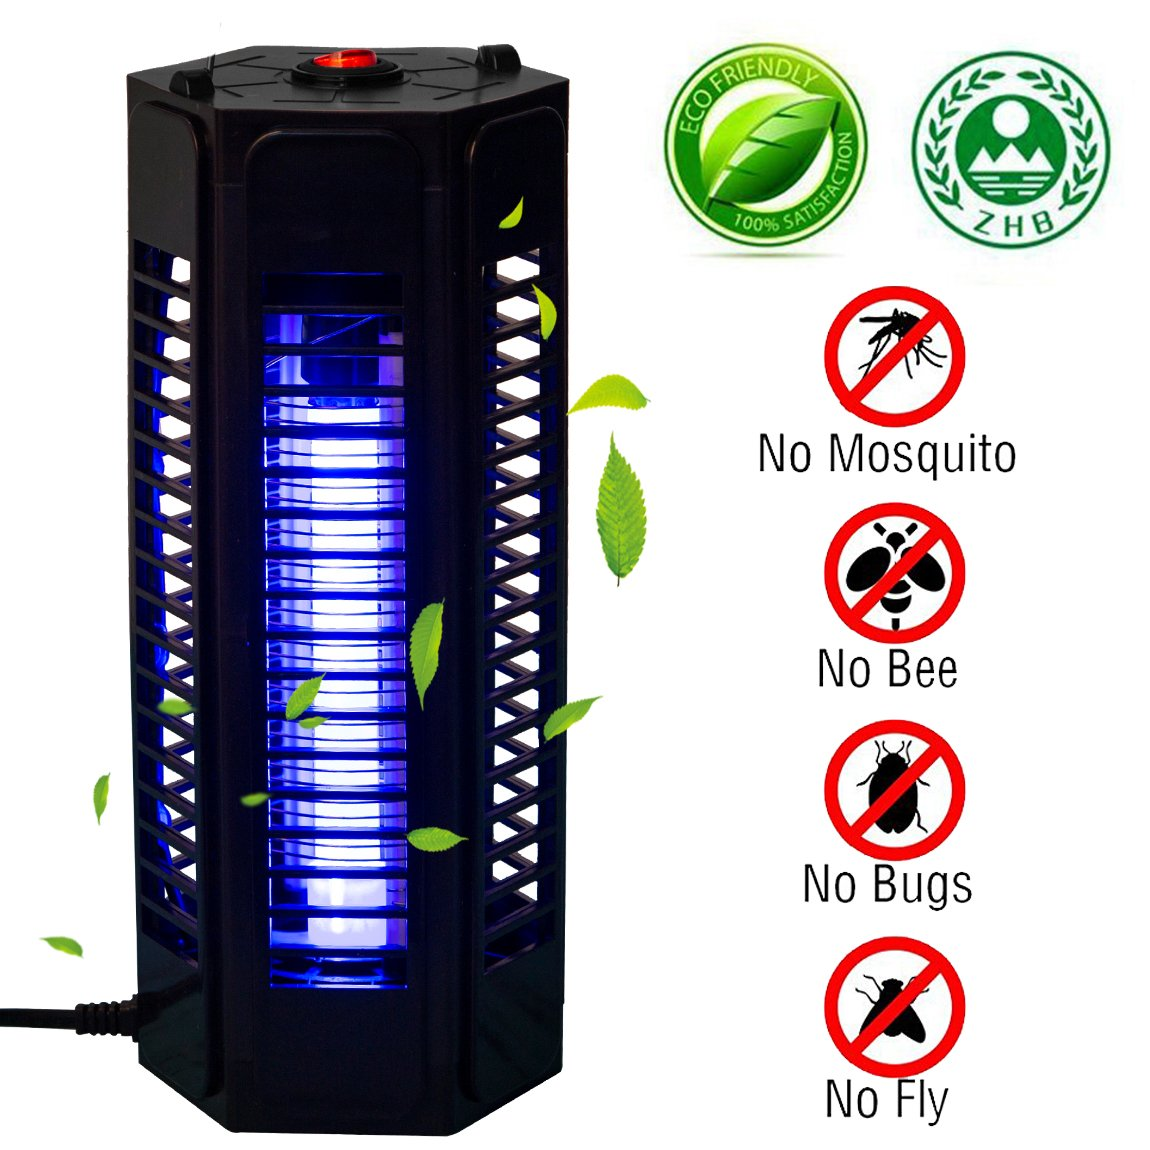 PrettyQueen Indoor Outdoor Mosquito Trap Bug Zapper Electronic Mosquito Killer Lamp Pest Bug Killer Trap Night Light UV LED Insect Fly Killer for Home Garden Camping Travel Black